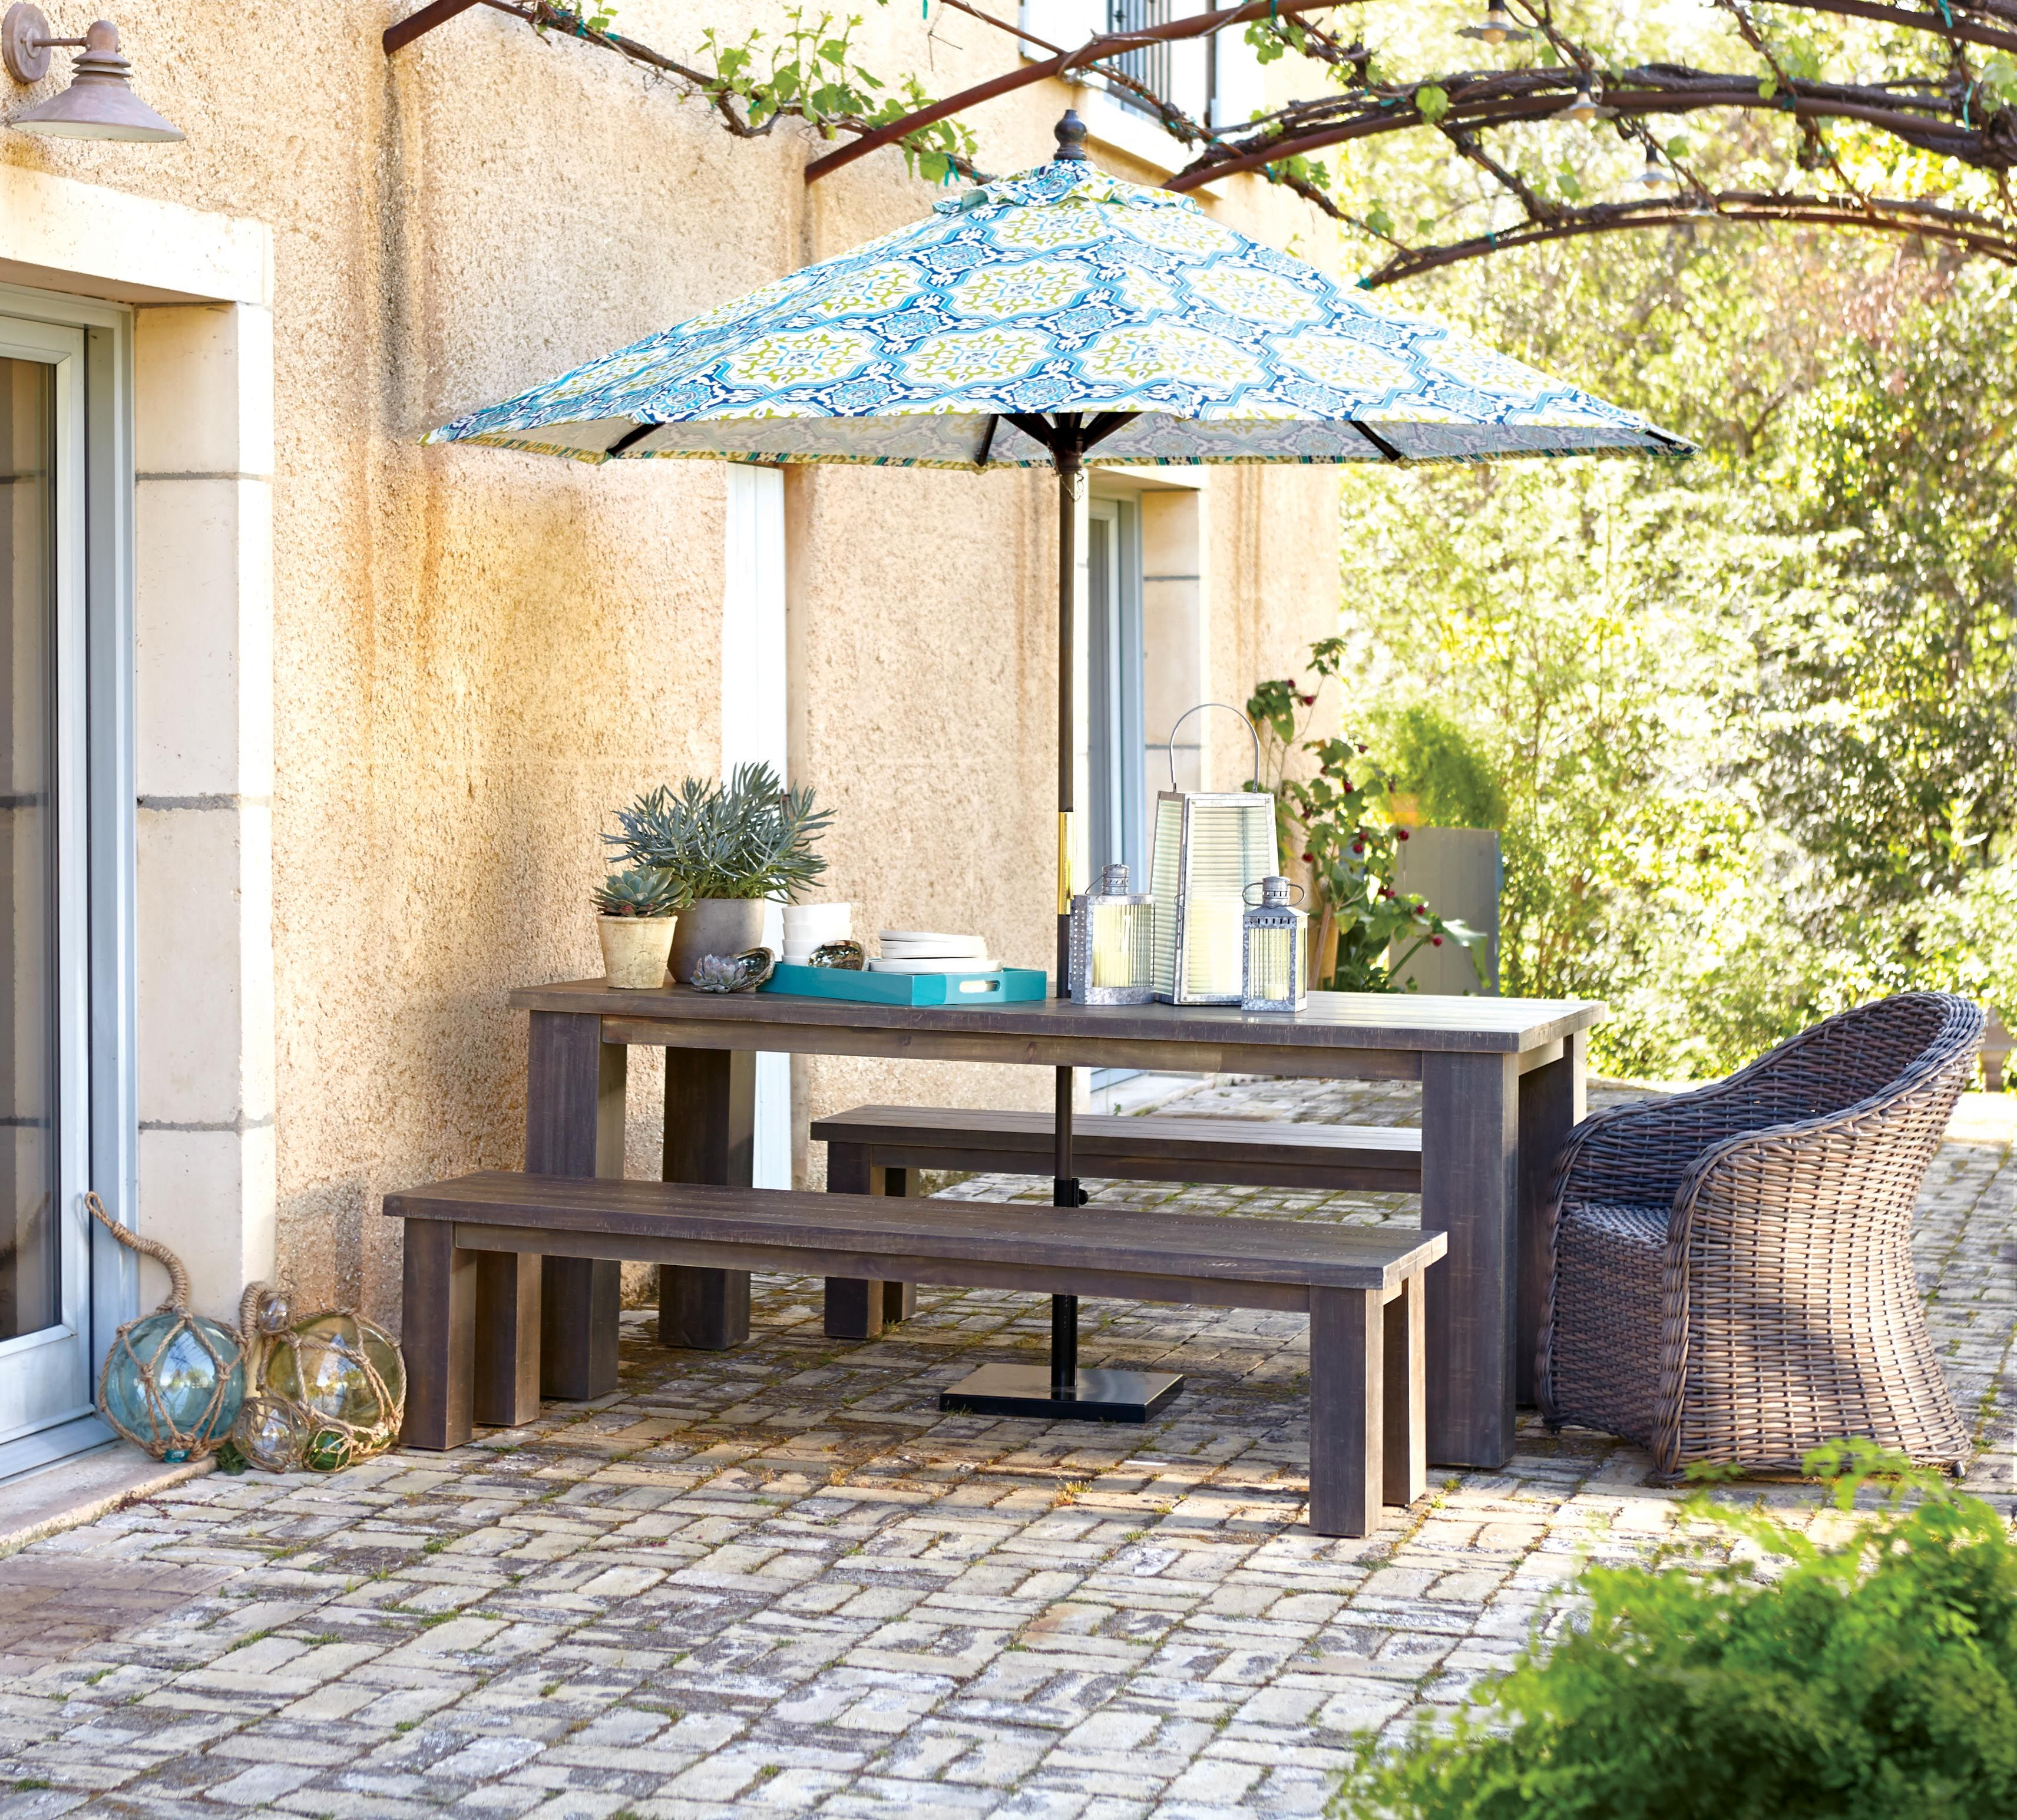 Create An Outdoor Getaway With Outdoor Seating, Patio Furniture, Classic  Adirondack Chairs And More